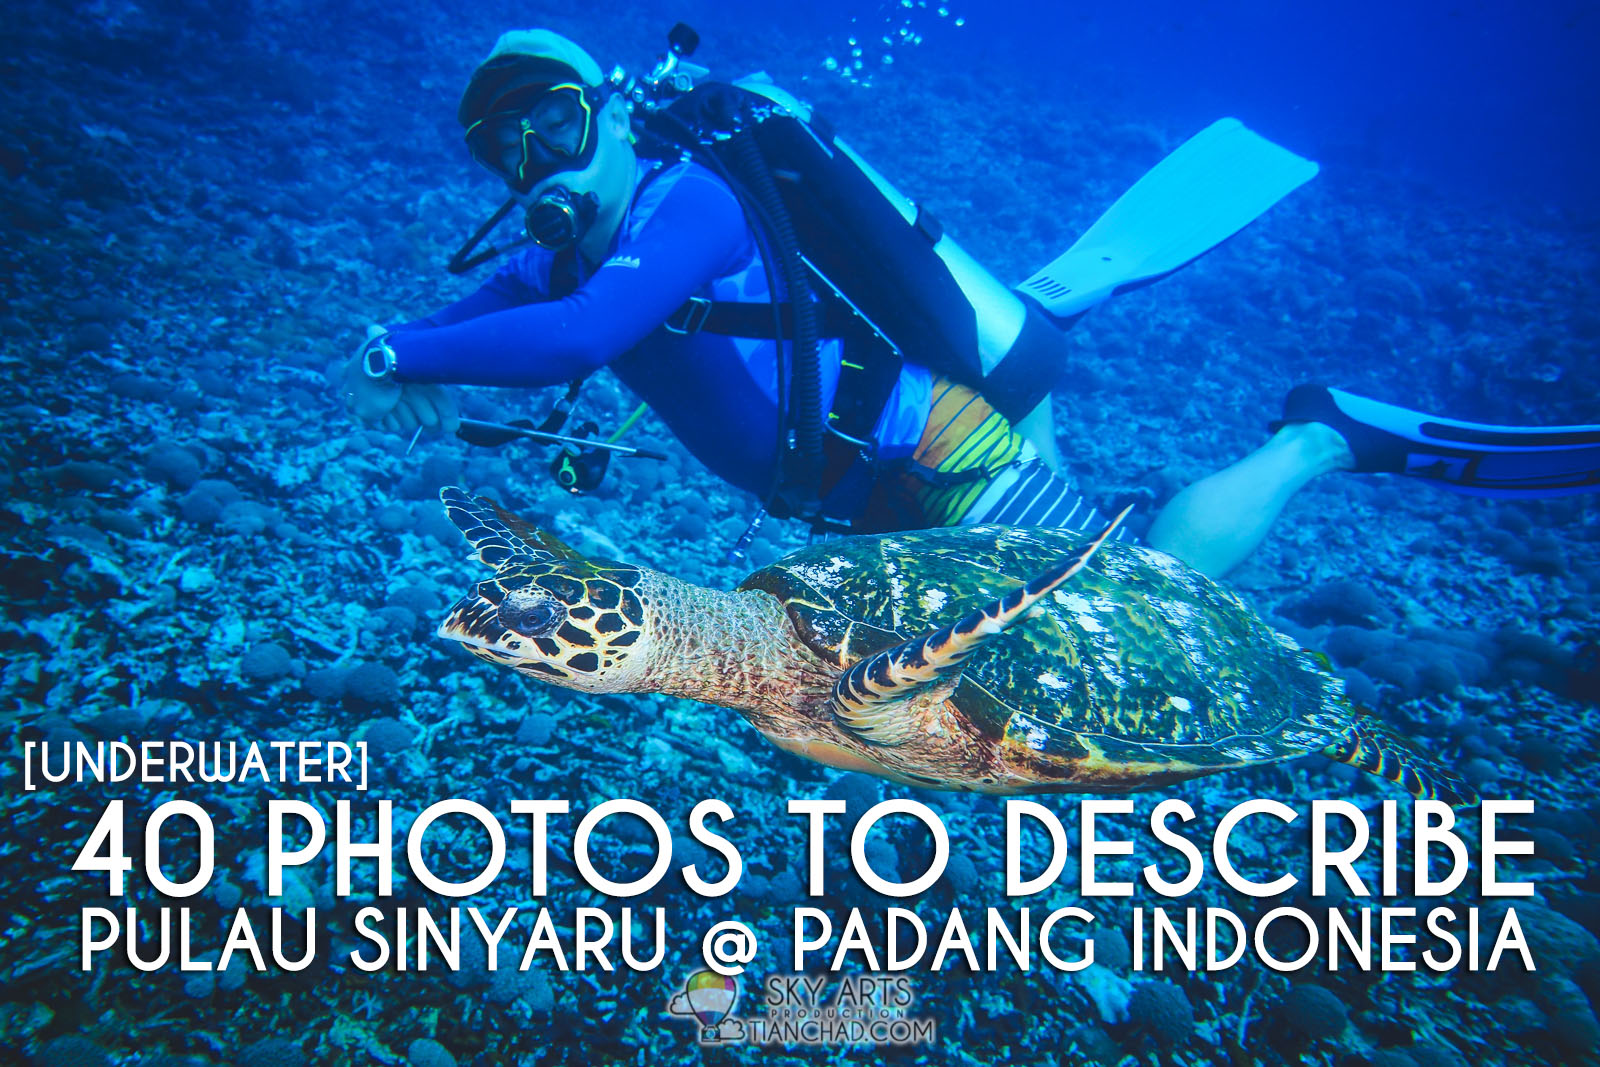 398a01fb13e6 I am still new to diving sport but it has been great to explore beautiful  underwater heaven in the sea of Mabul Island (my first diving trip) and  Pulau ...